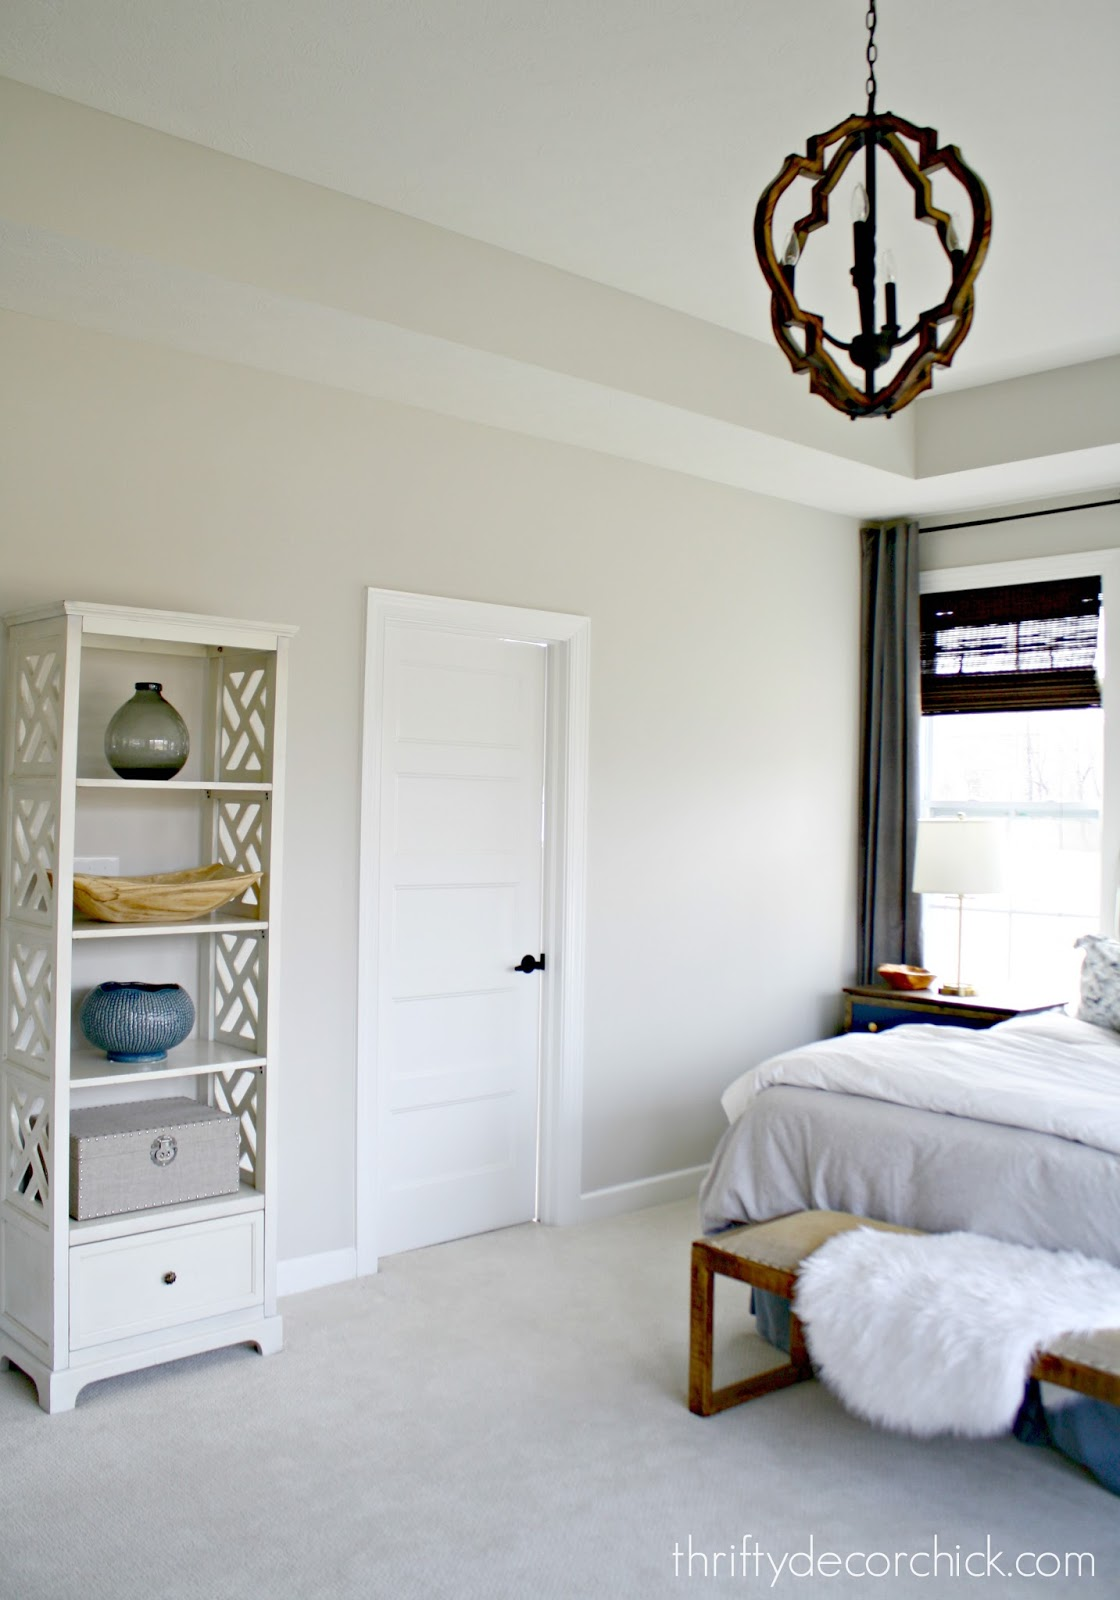 Five paneled white doors